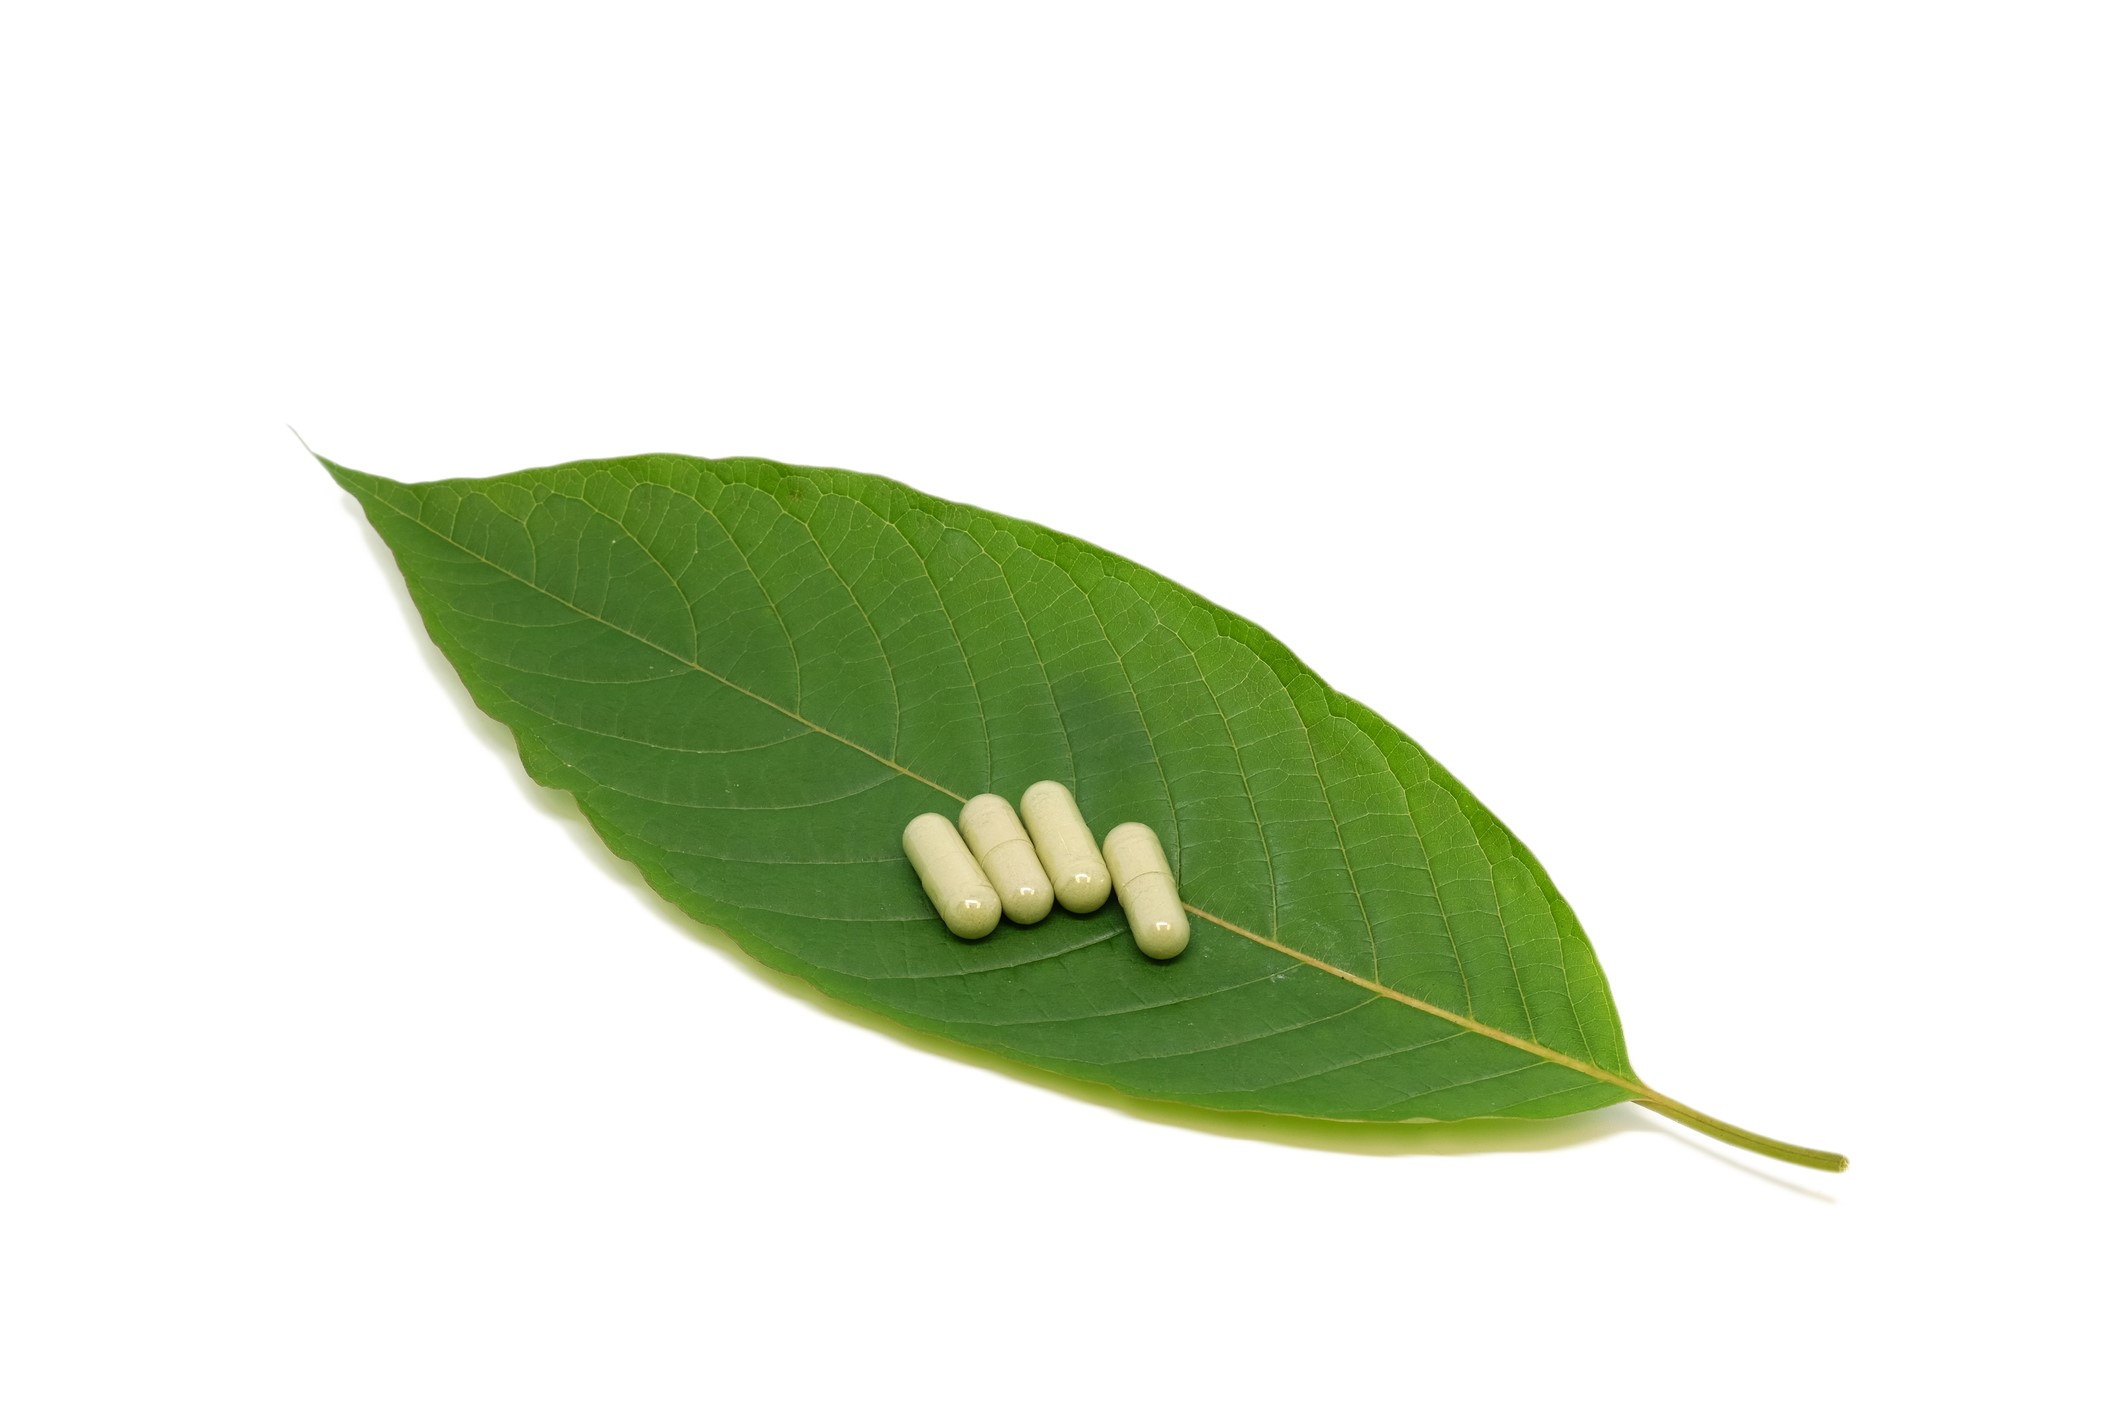 Leaf with pills